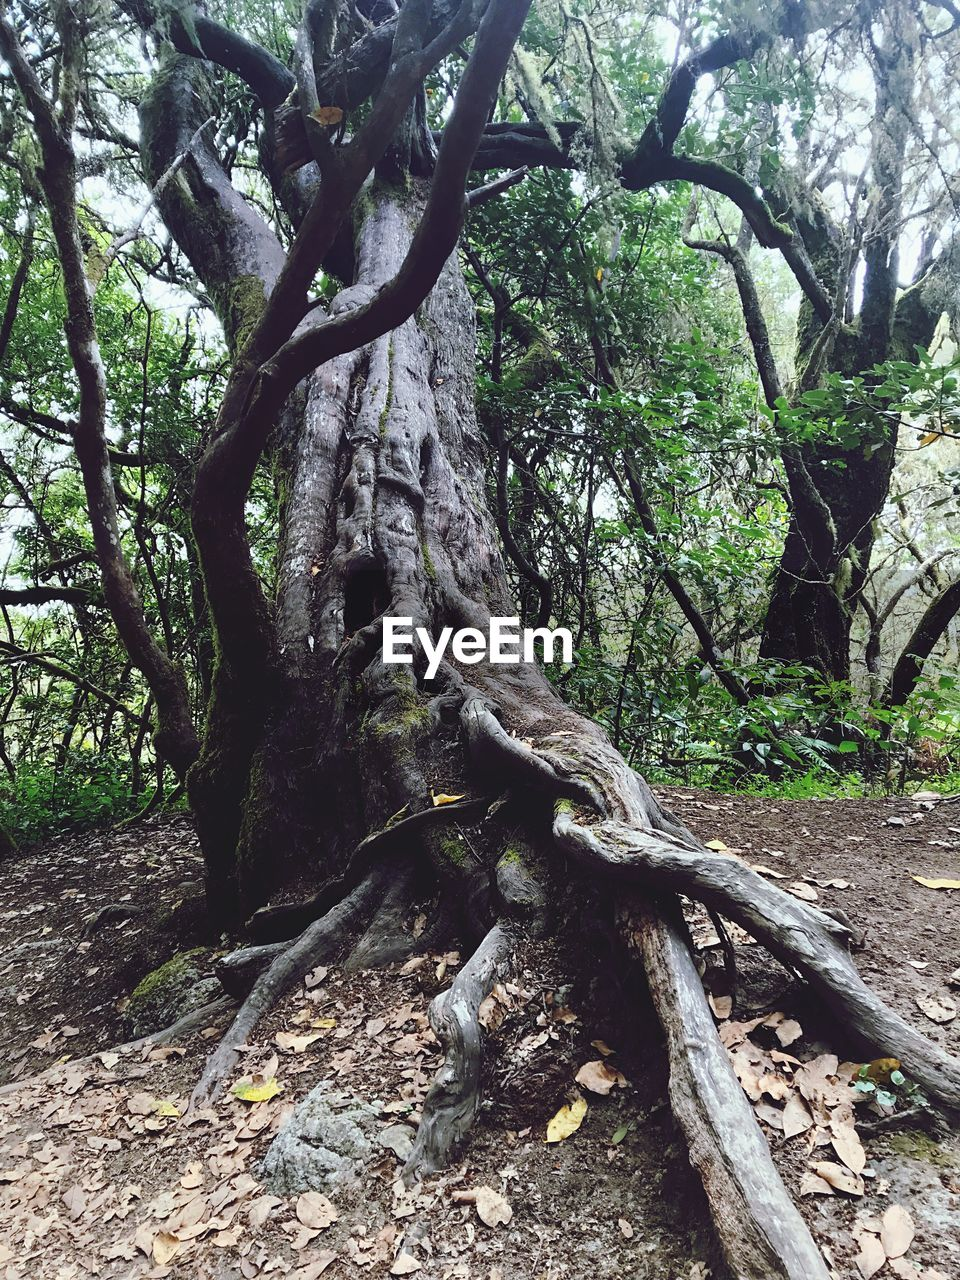 tree, plant, land, nature, growth, forest, tree trunk, trunk, no people, root, day, plant part, tranquility, branch, beauty in nature, outdoors, woodland, wood - material, green color, leaf, bark